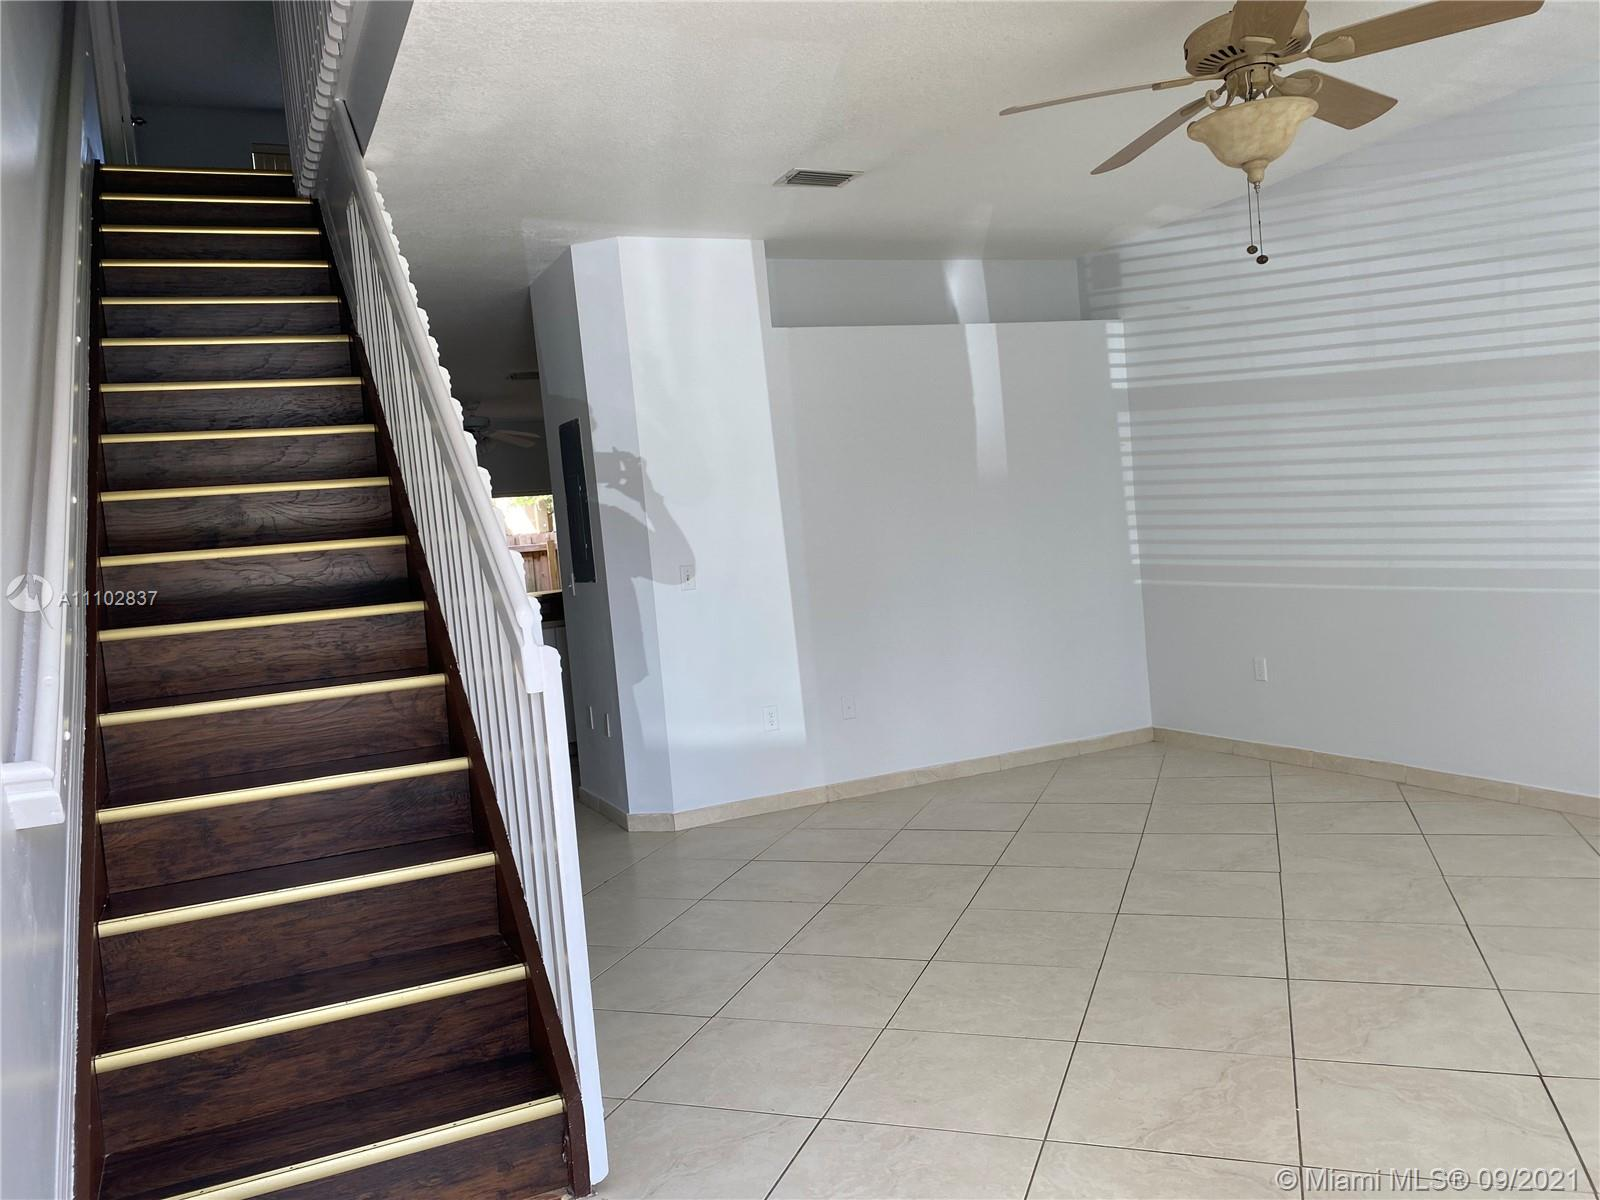 TownGate Condo,For Rent,TownGate Brickell,realty,broker,condos near me